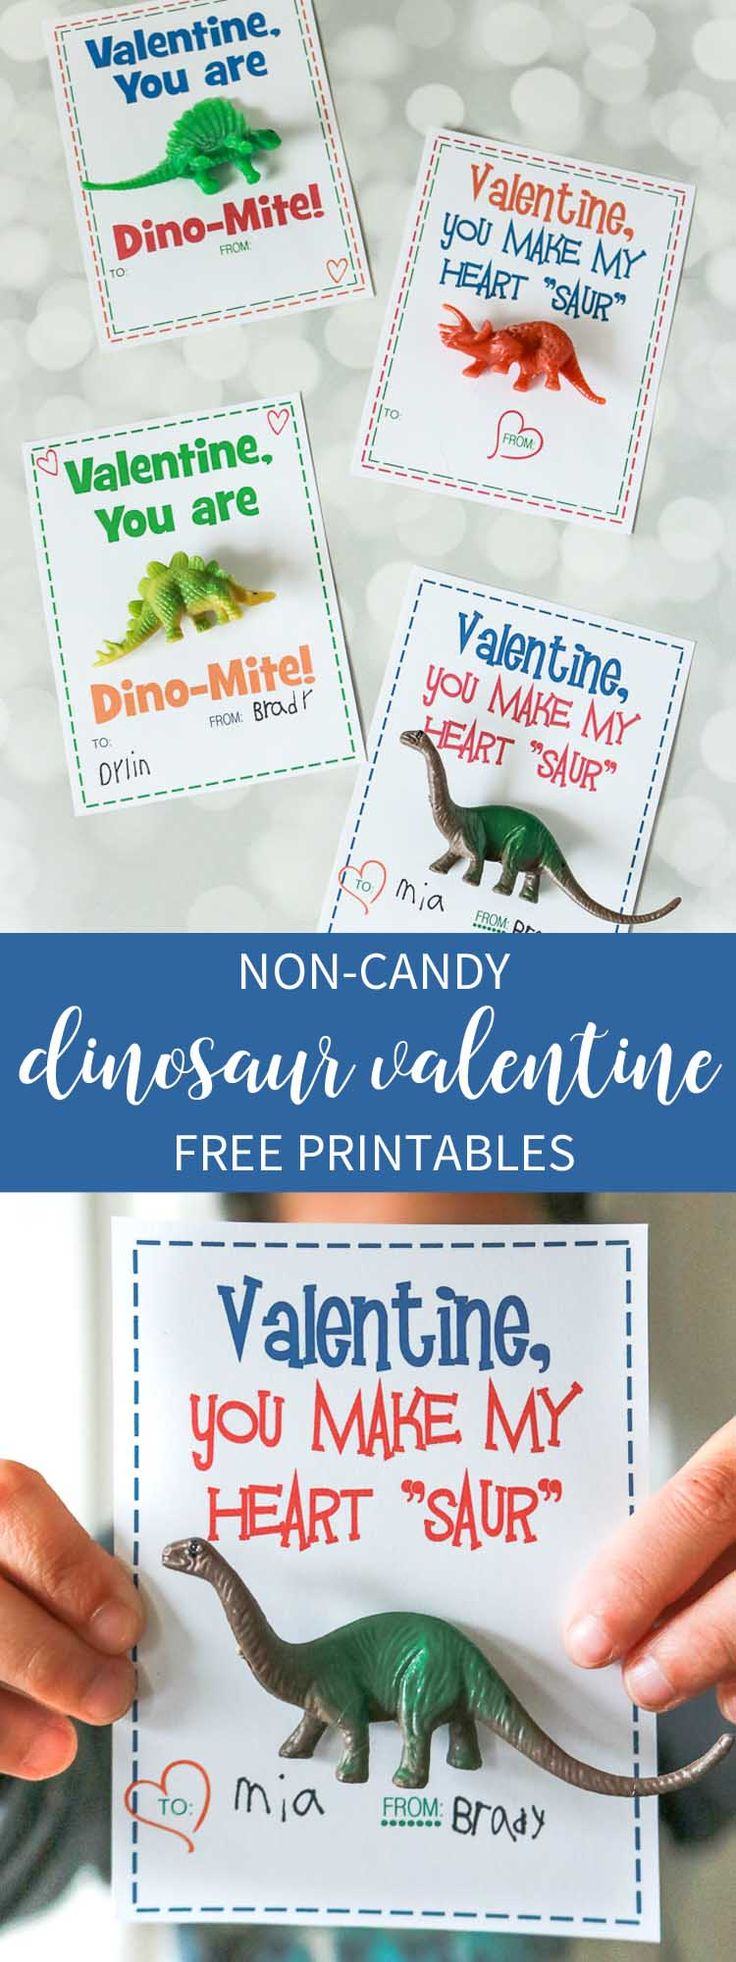 The 25 best DIY Valentines ideas for classmates ideas on – Cute Valentine Card Ideas for Him